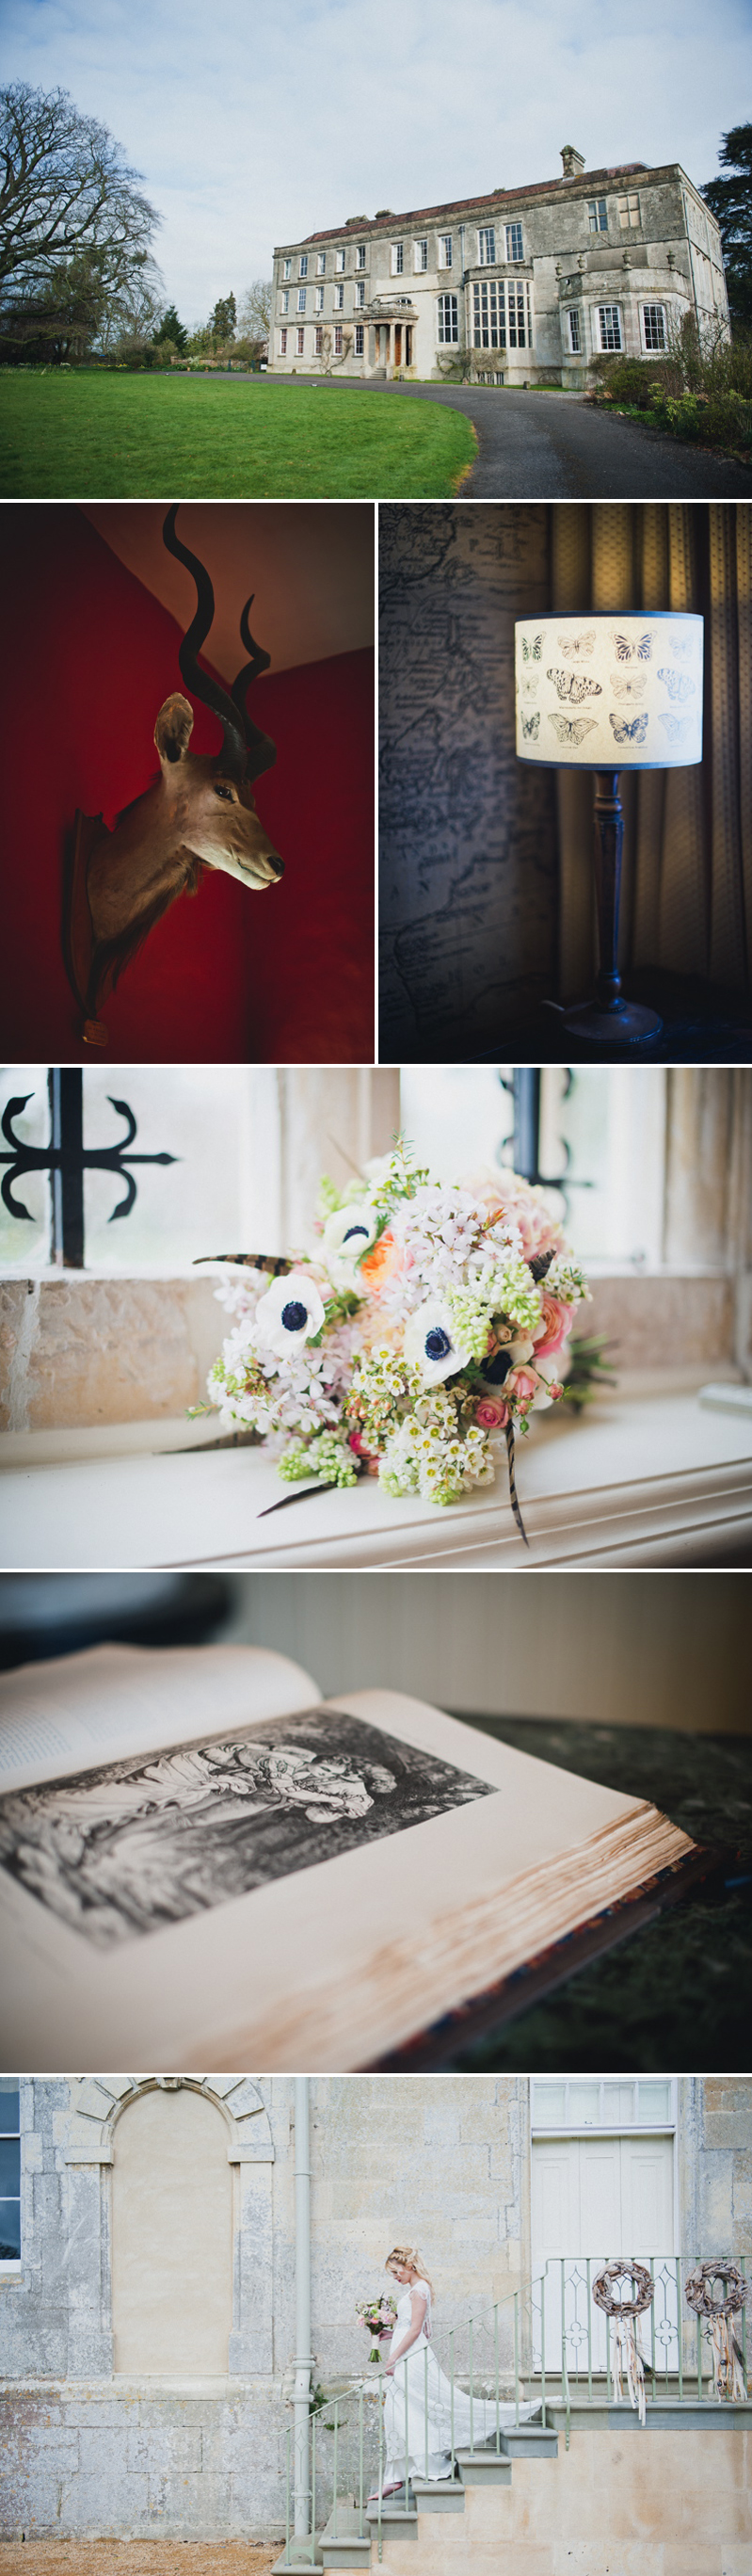 bohemian-bridal-styled-shoot-elmore-court-coco-wedding-venues-layer-1